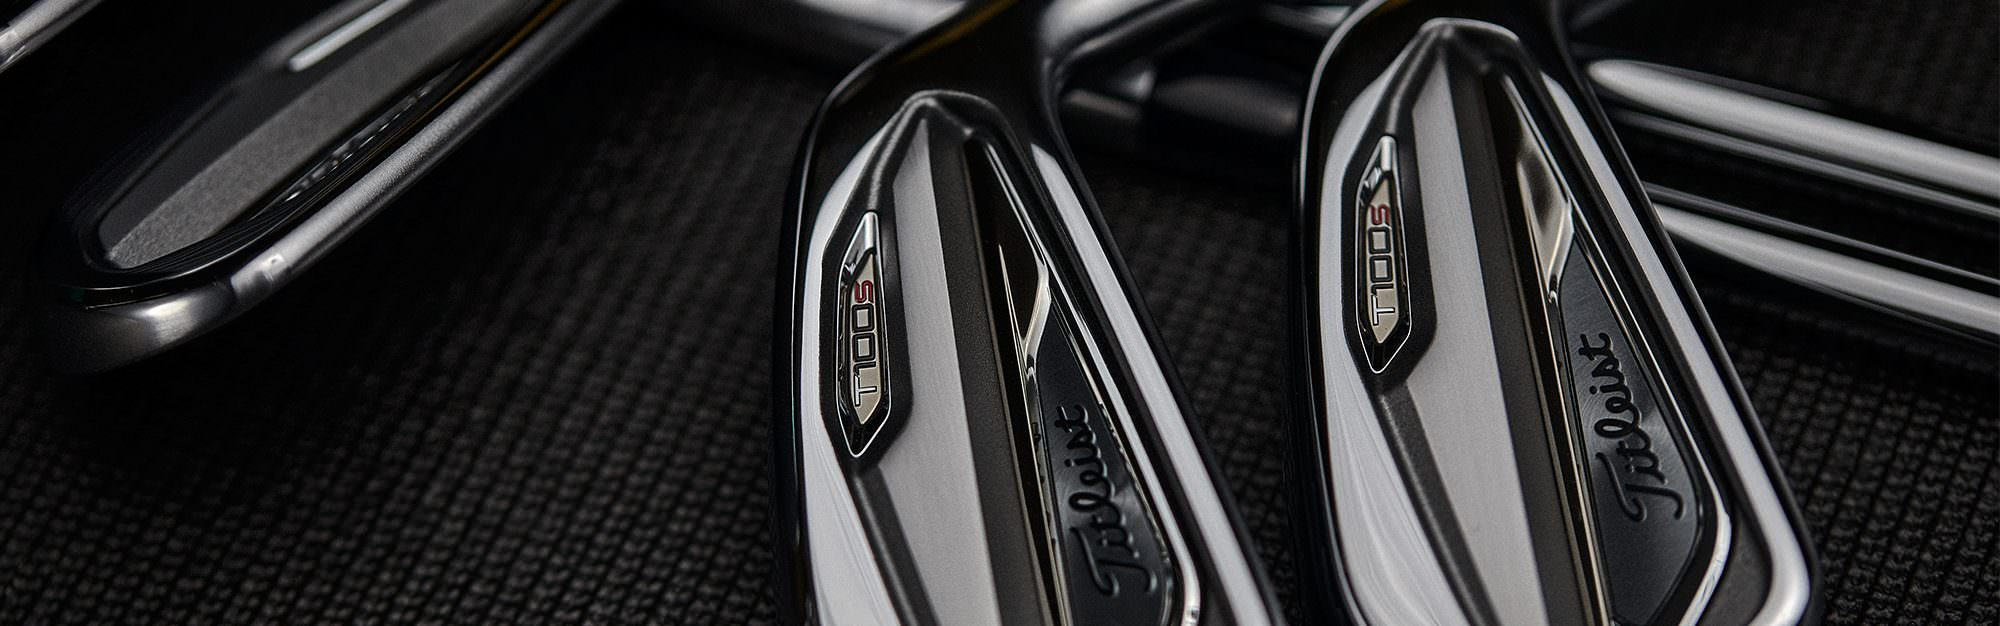 Like the Titleist T100 irons but want a bit more oomph? The T100S is just for you